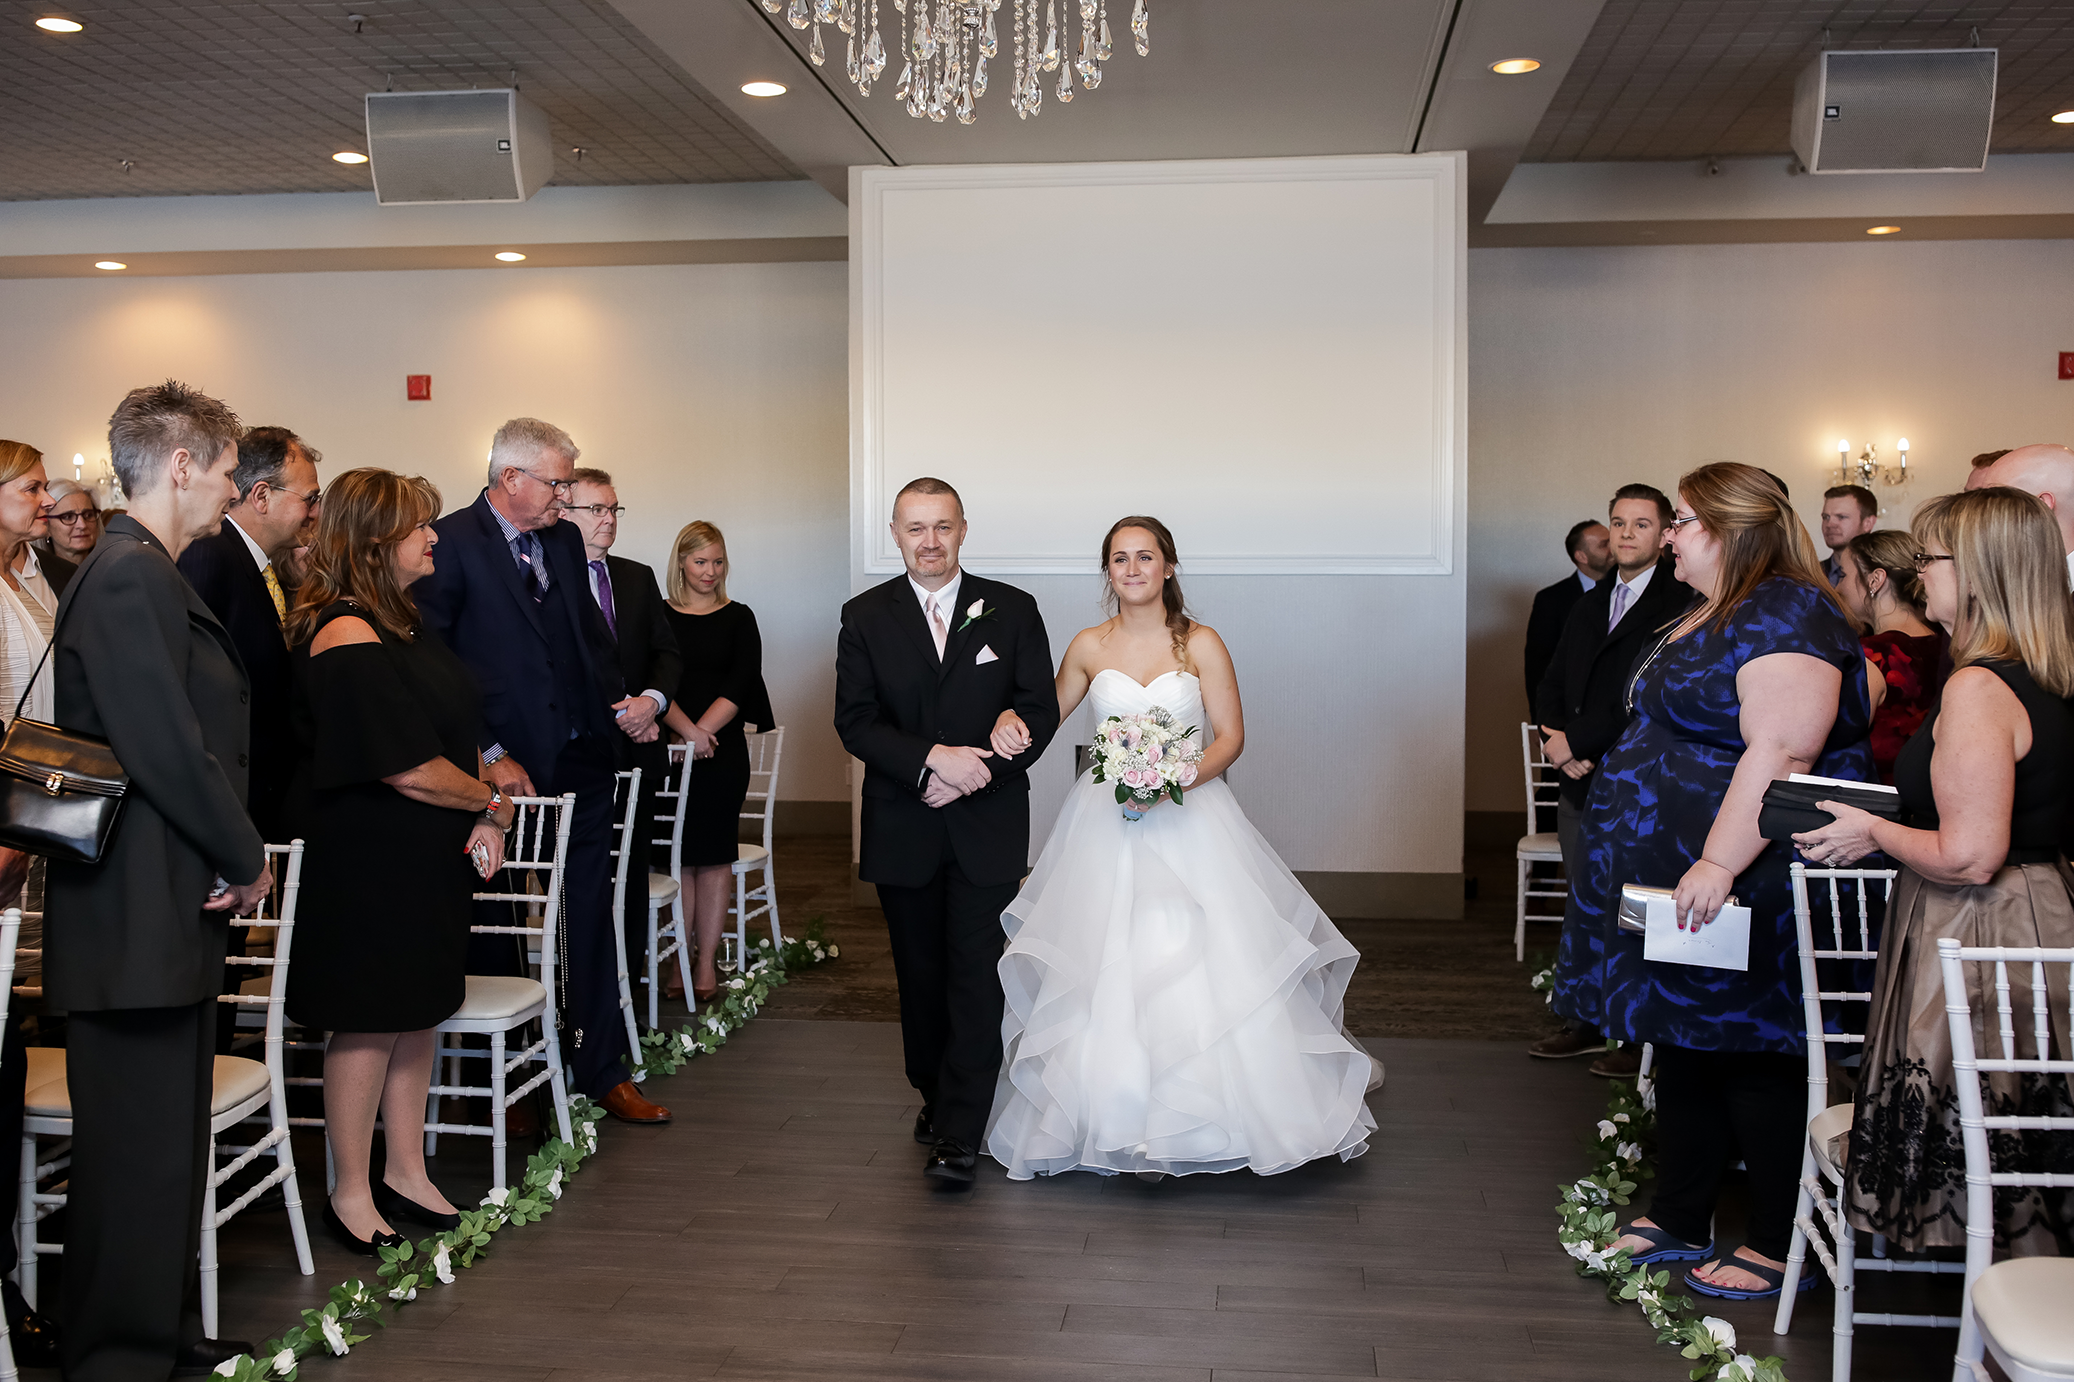 manor_wedding_0032